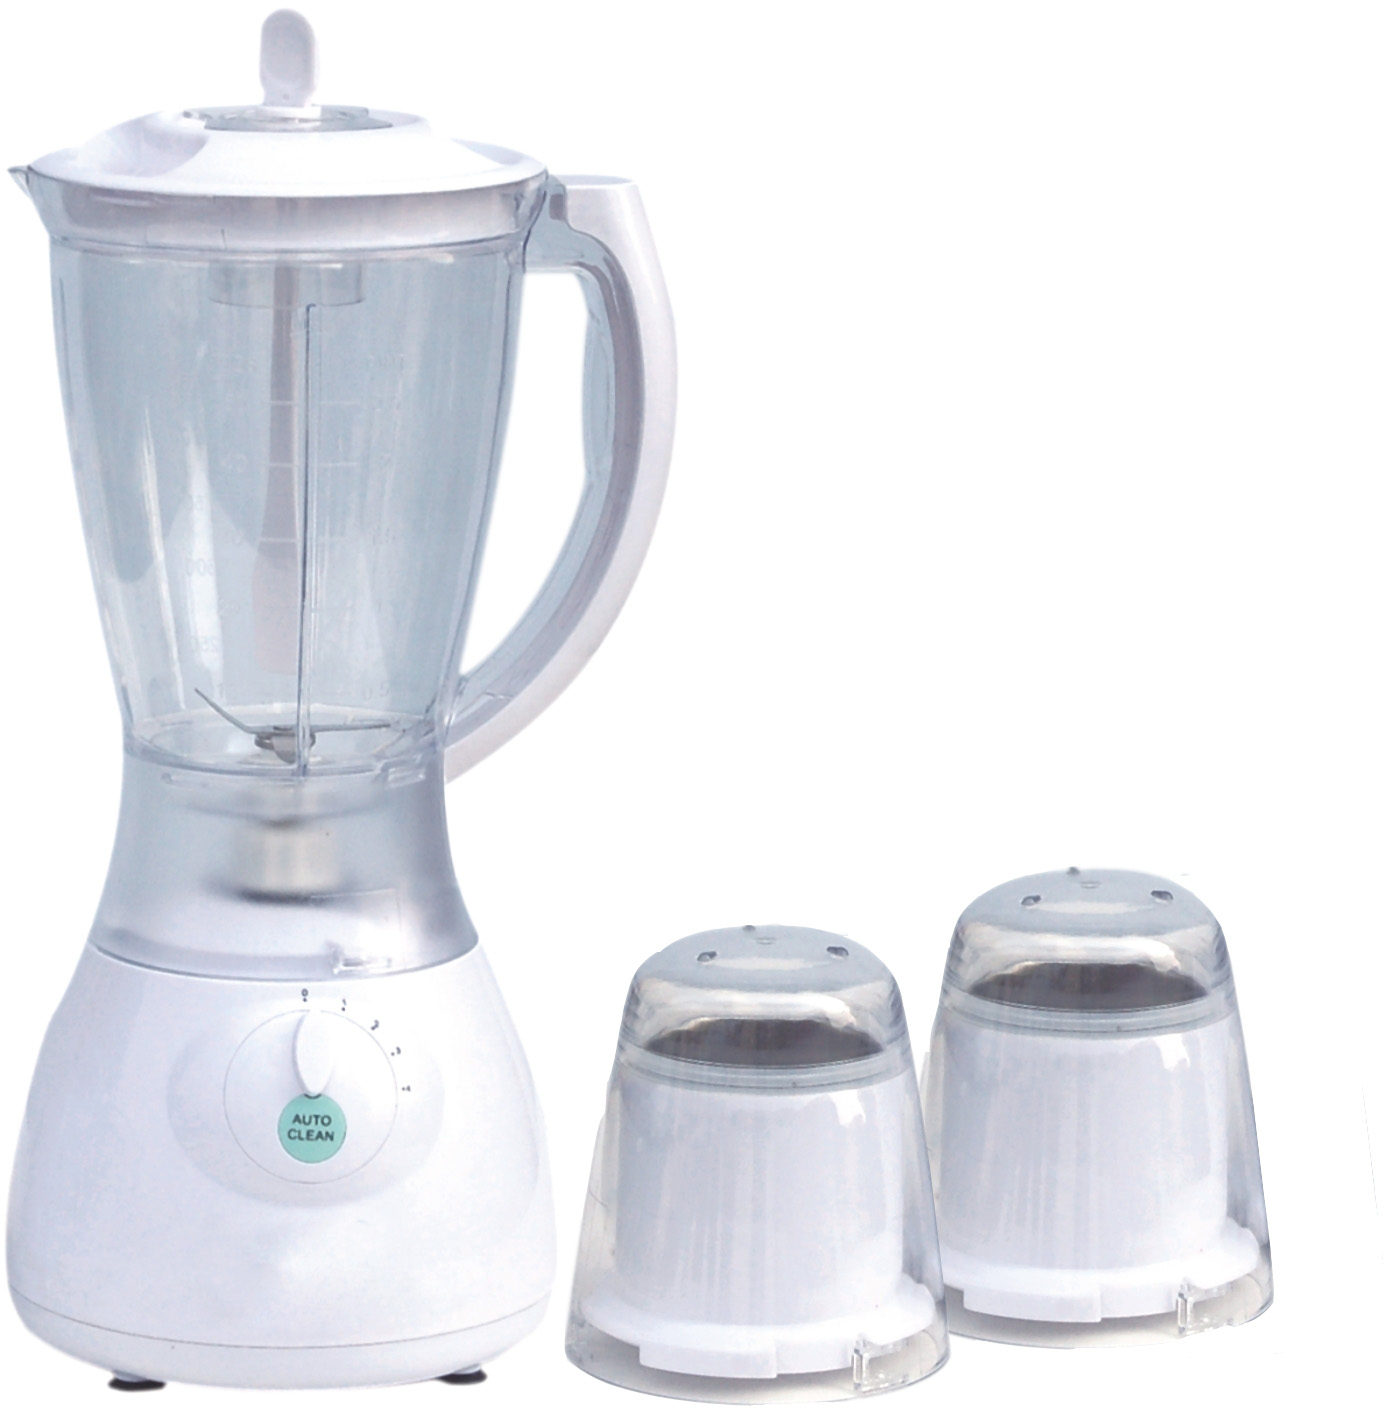 Hot sell 1.5L 3 in 1 unbreakable blender with filter